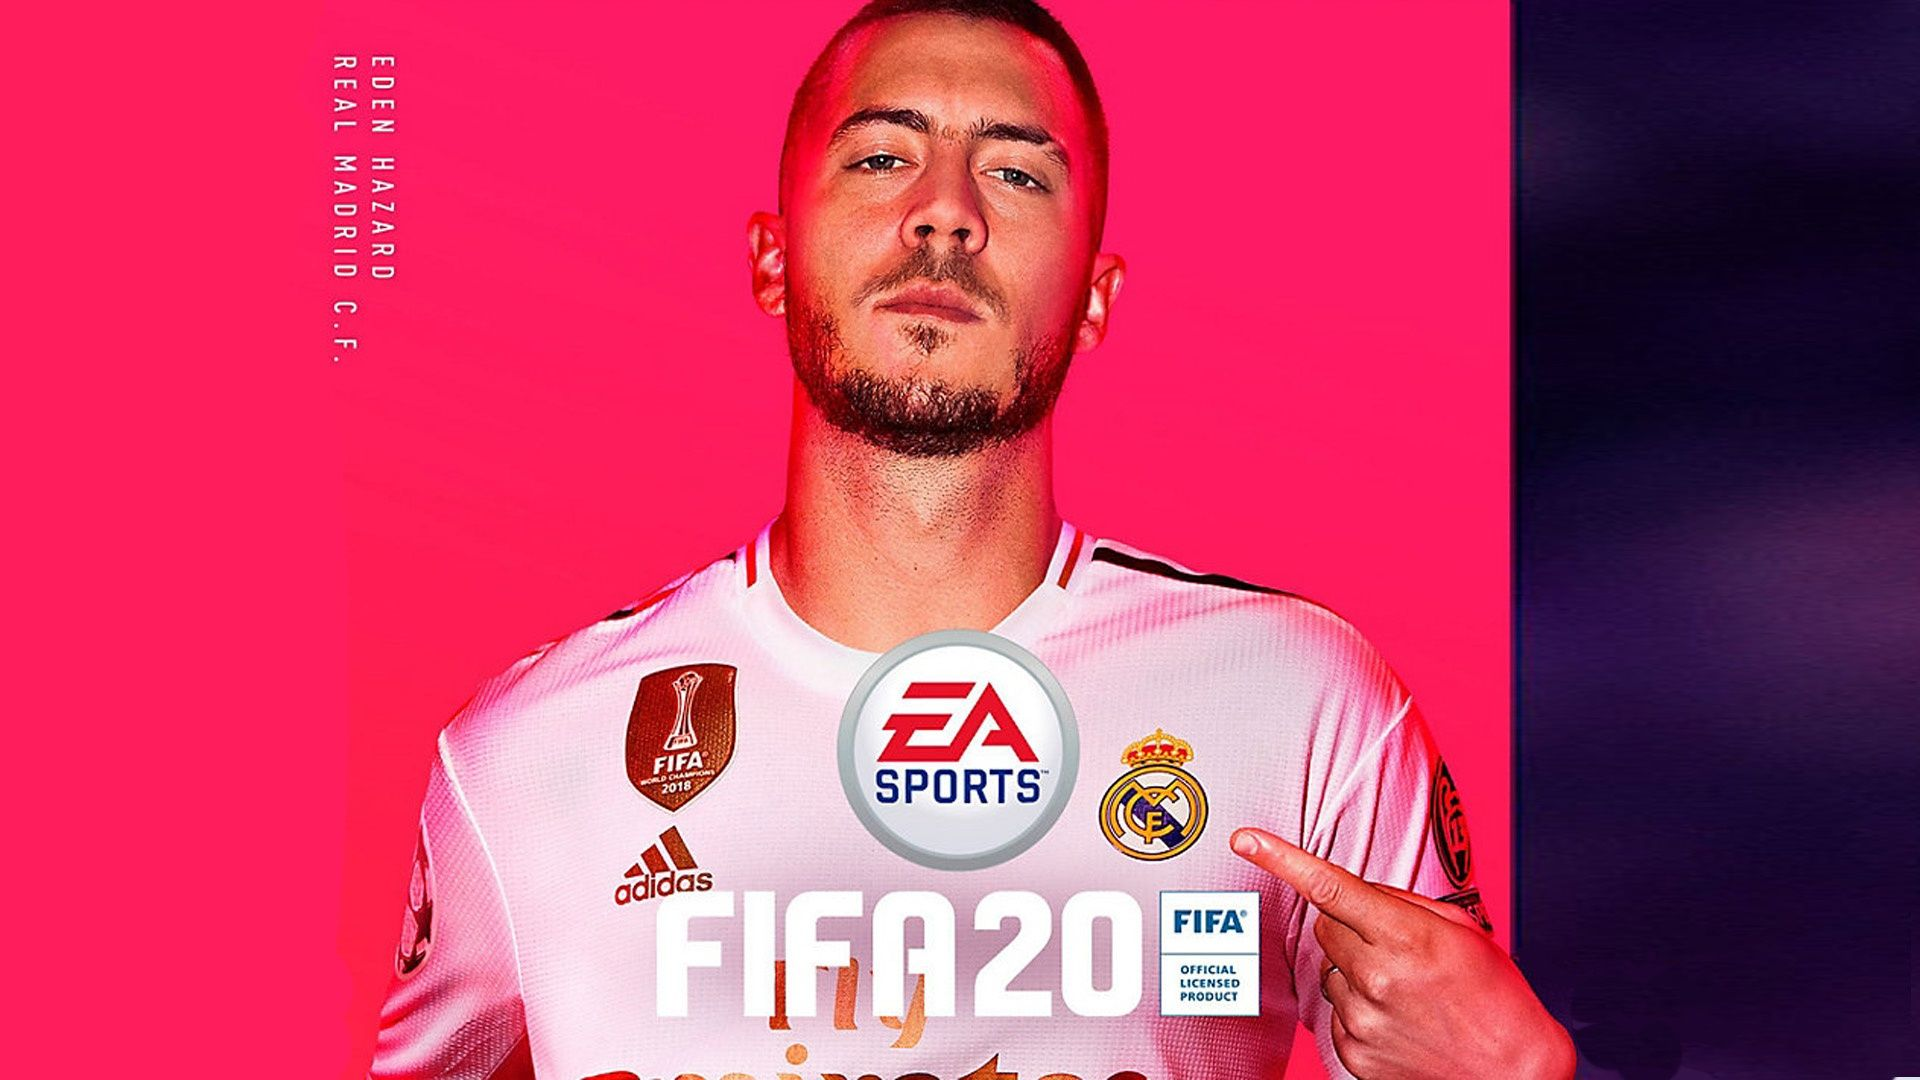 Fifa 20 Best Hd Wallpaper 2019 Supertab Themes